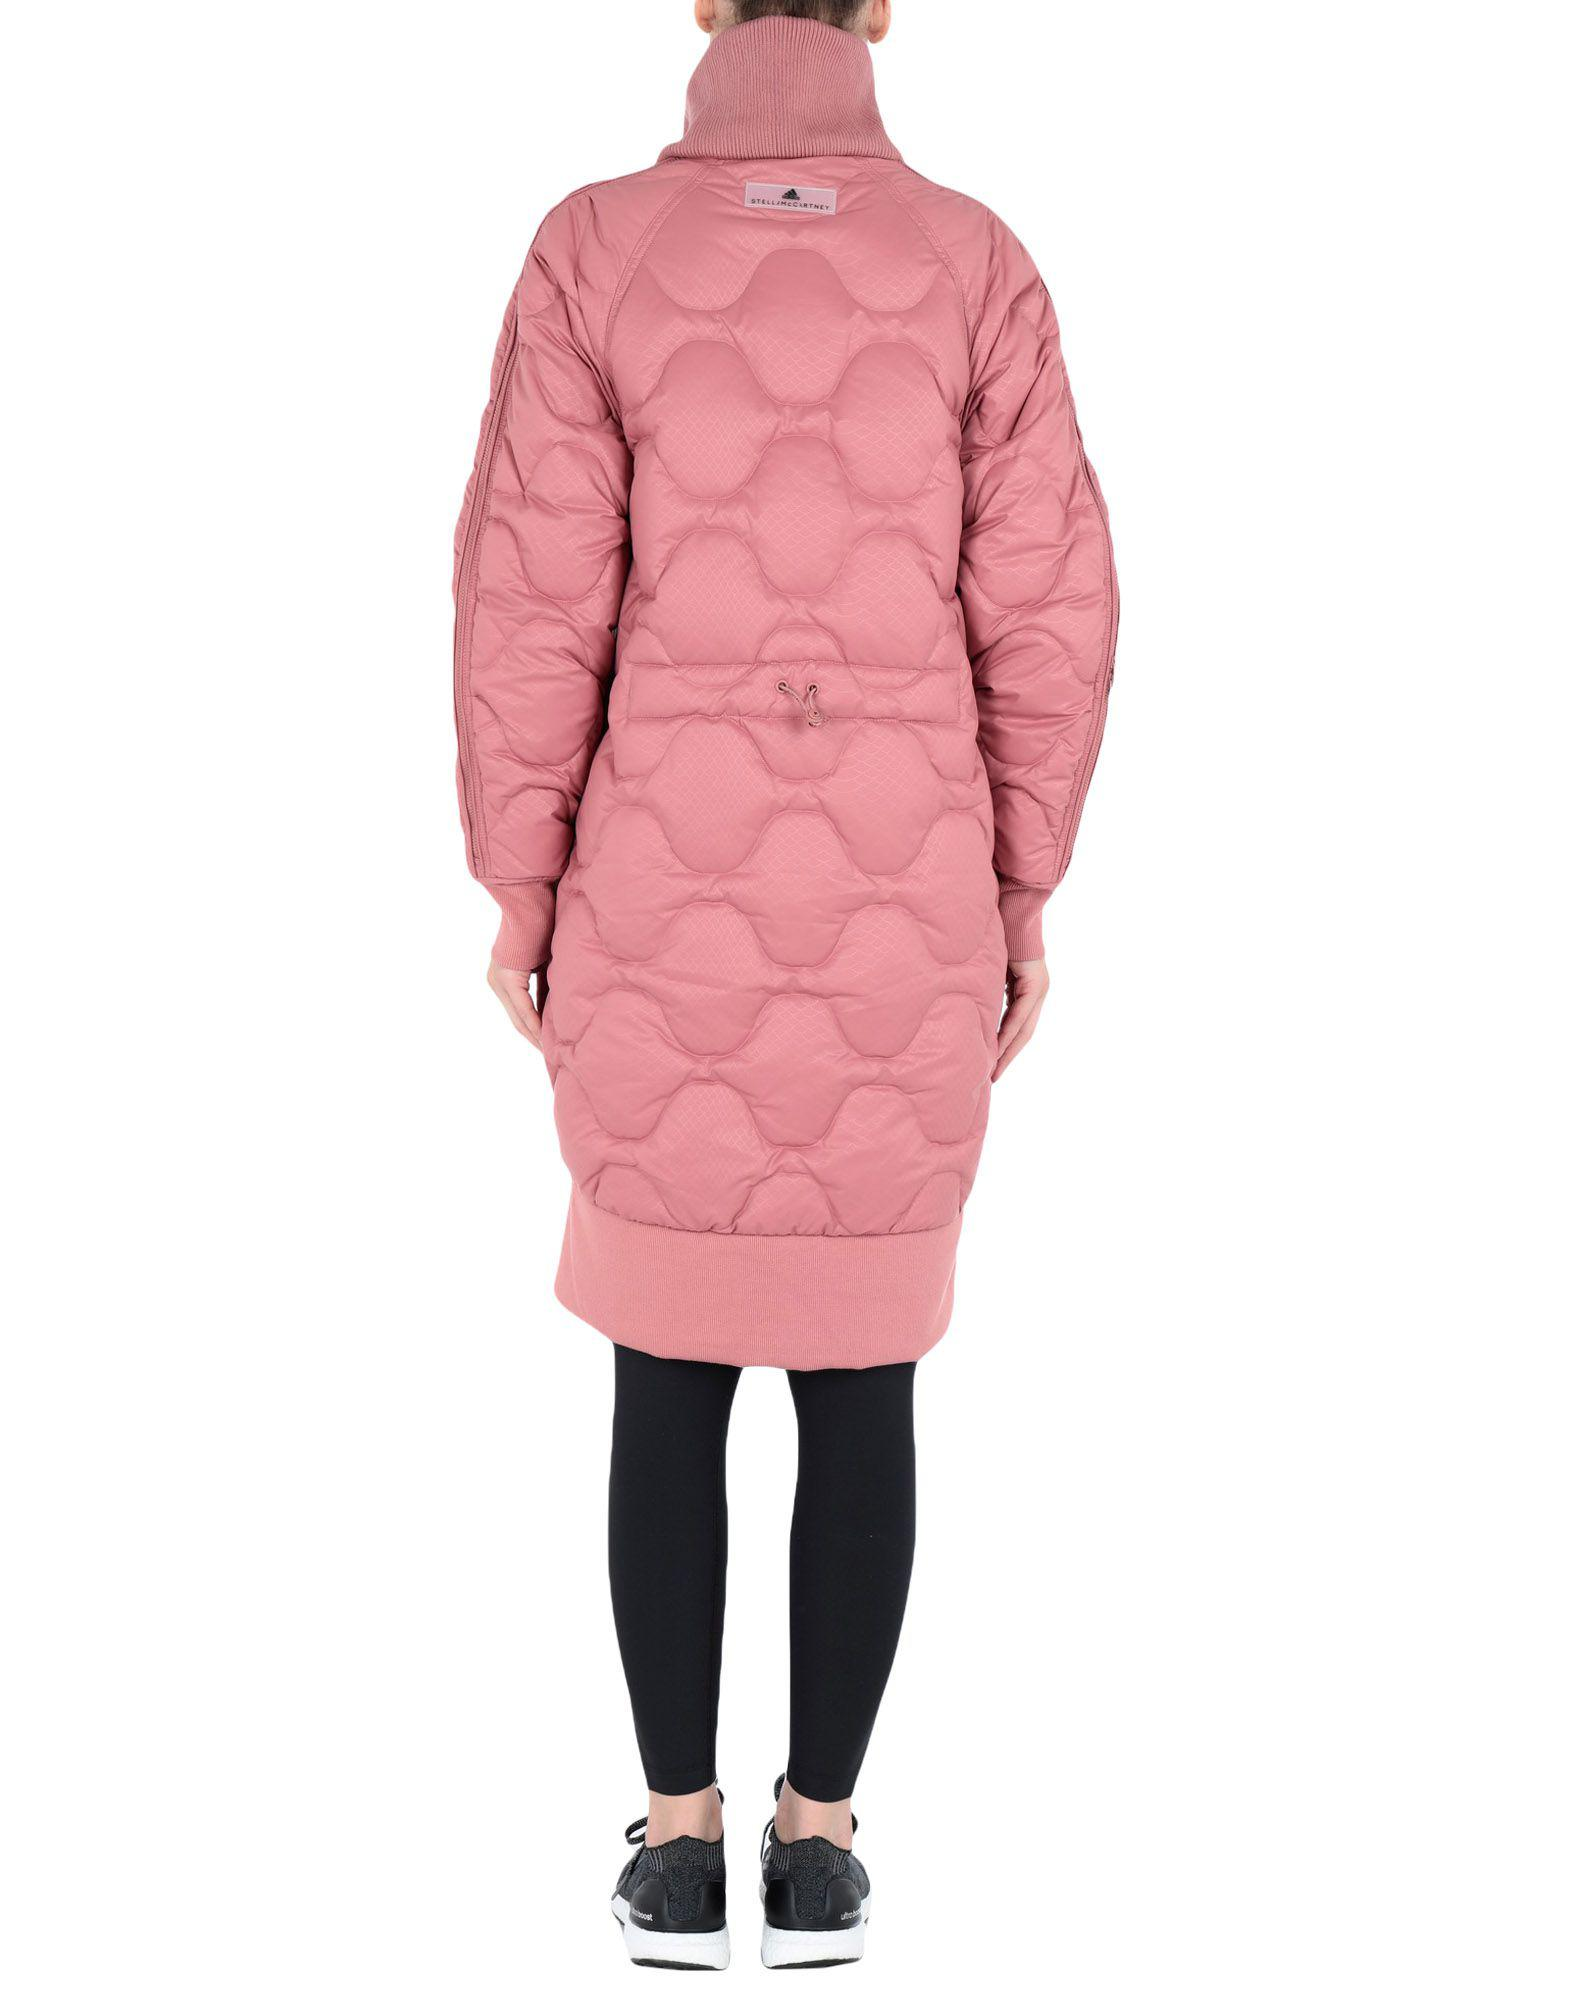 02f7aee3ab06 Lyst - adidas By Stella McCartney Synthetic Down Jacket in Pink